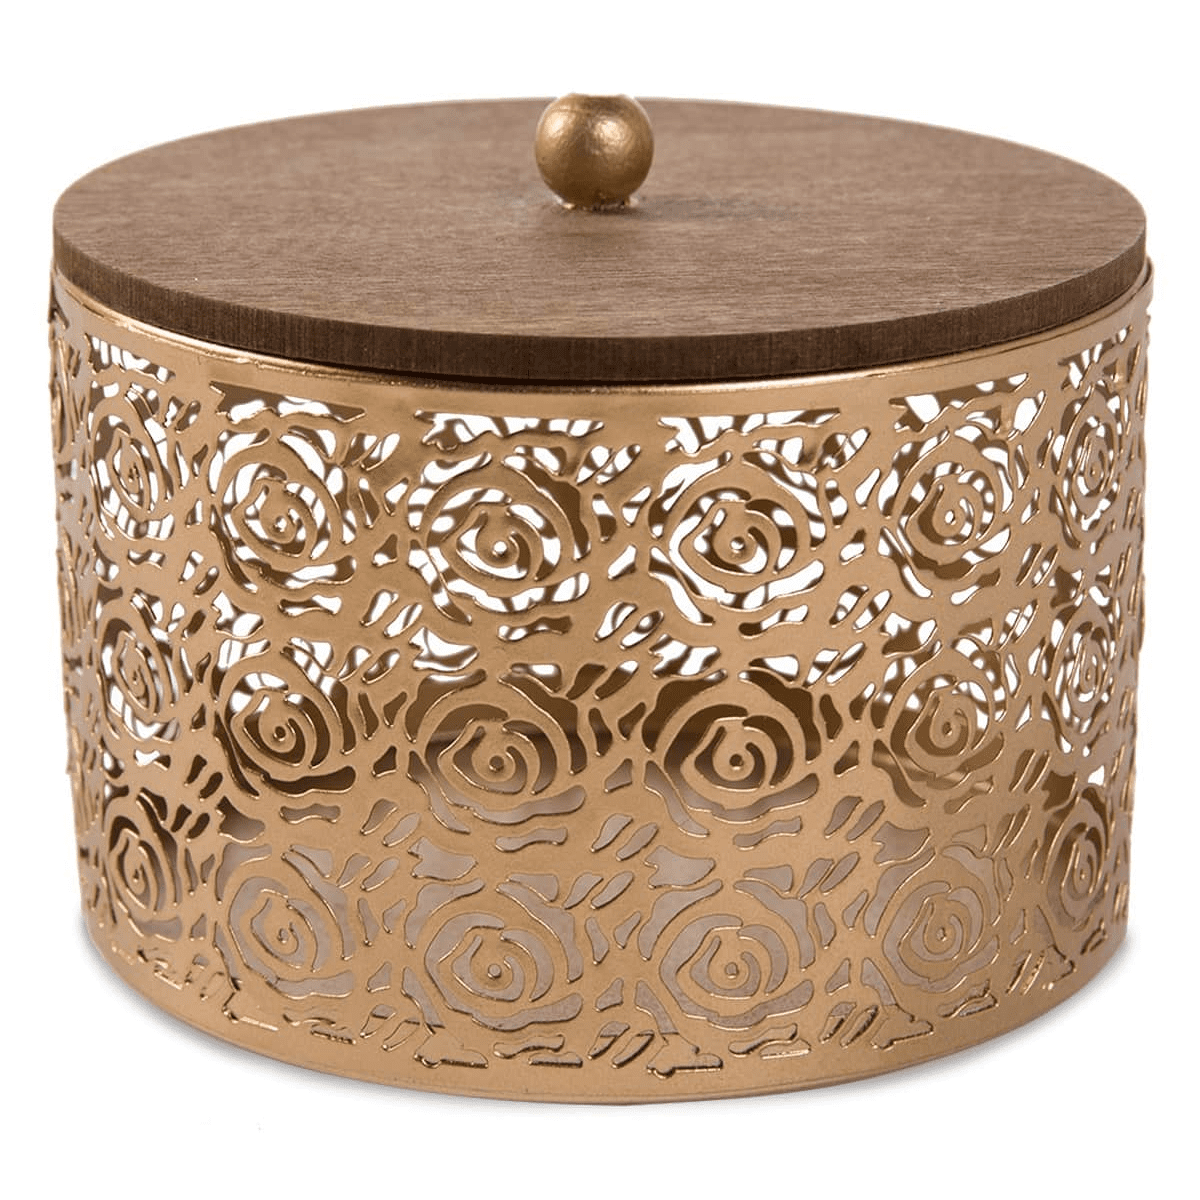 Small Metal Storage Box & Wooden Cover (13.5 x 12 cm, Gold)